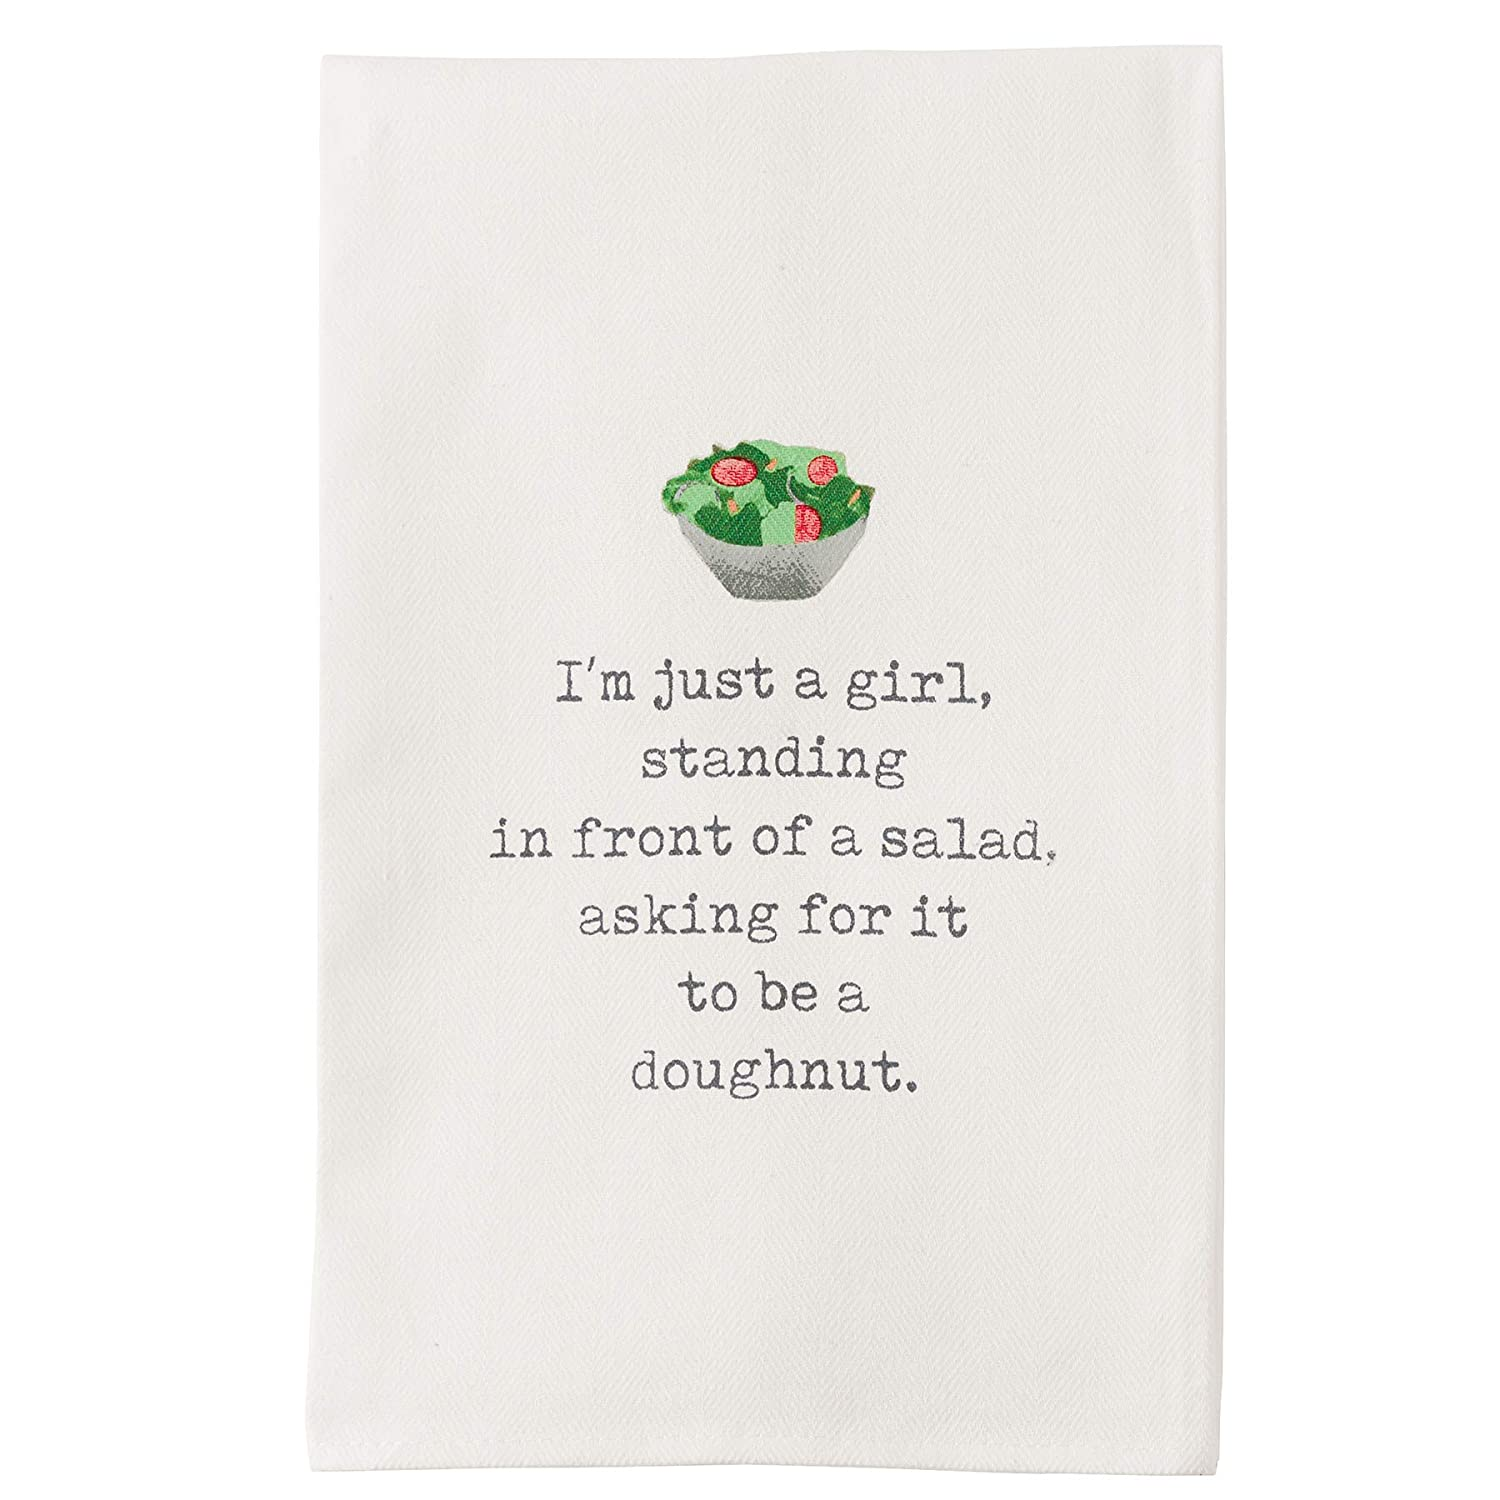 Free shipping anywhere in the nation Salad Award Funny Icon Towel